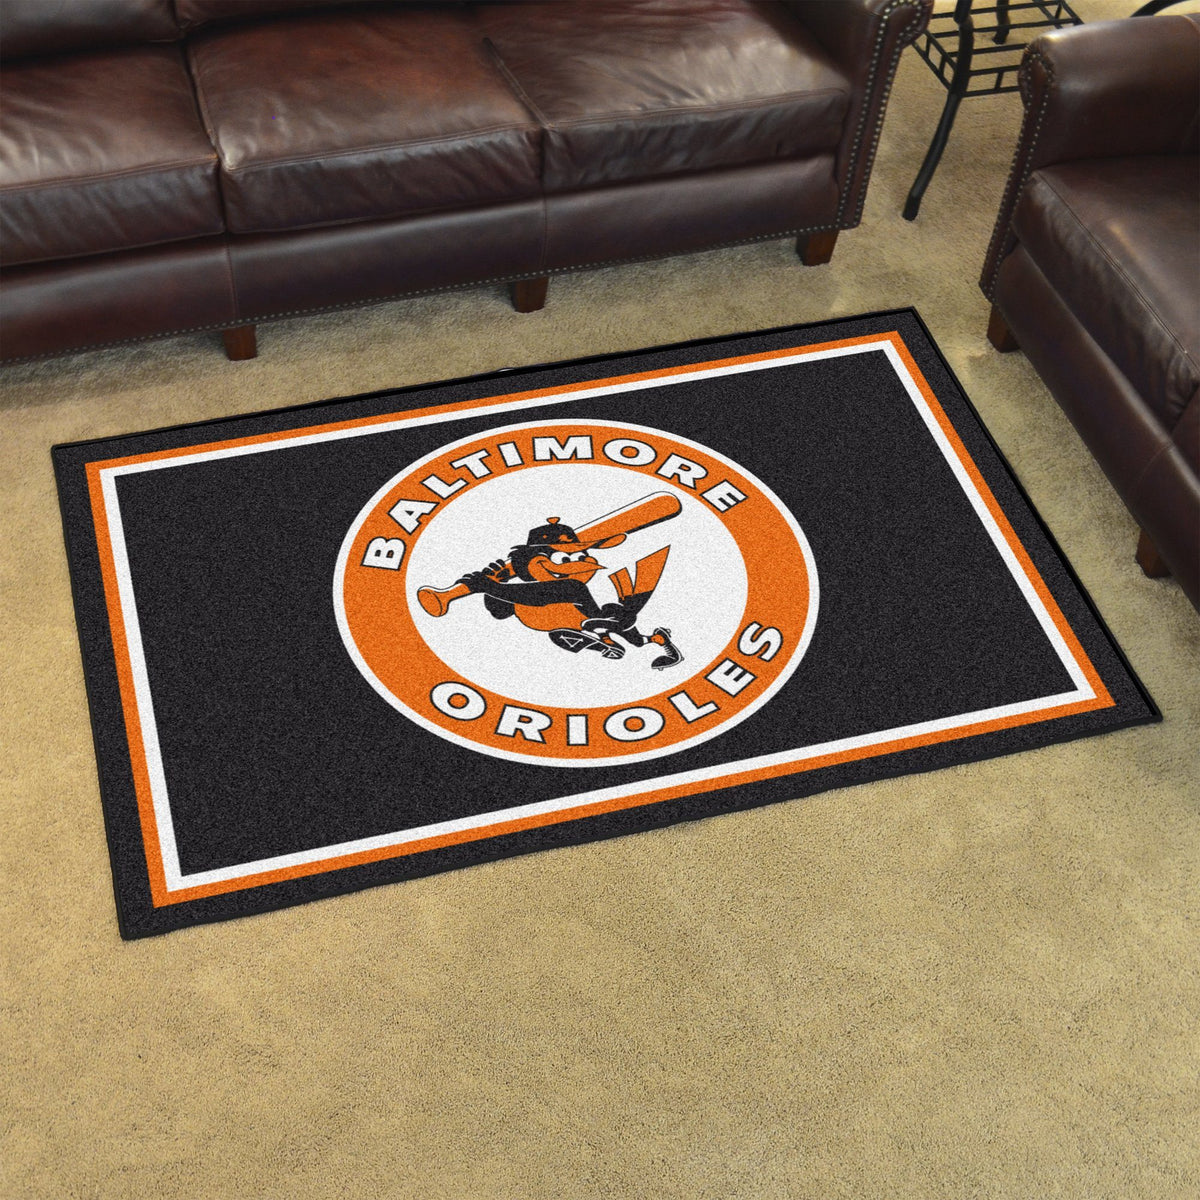 MLB Retro - 4' x 6' Rug MLB Retro Mats, Plush Rugs, 4x6 Rug, MLB, Home Fan Mats Baltimore Orioles